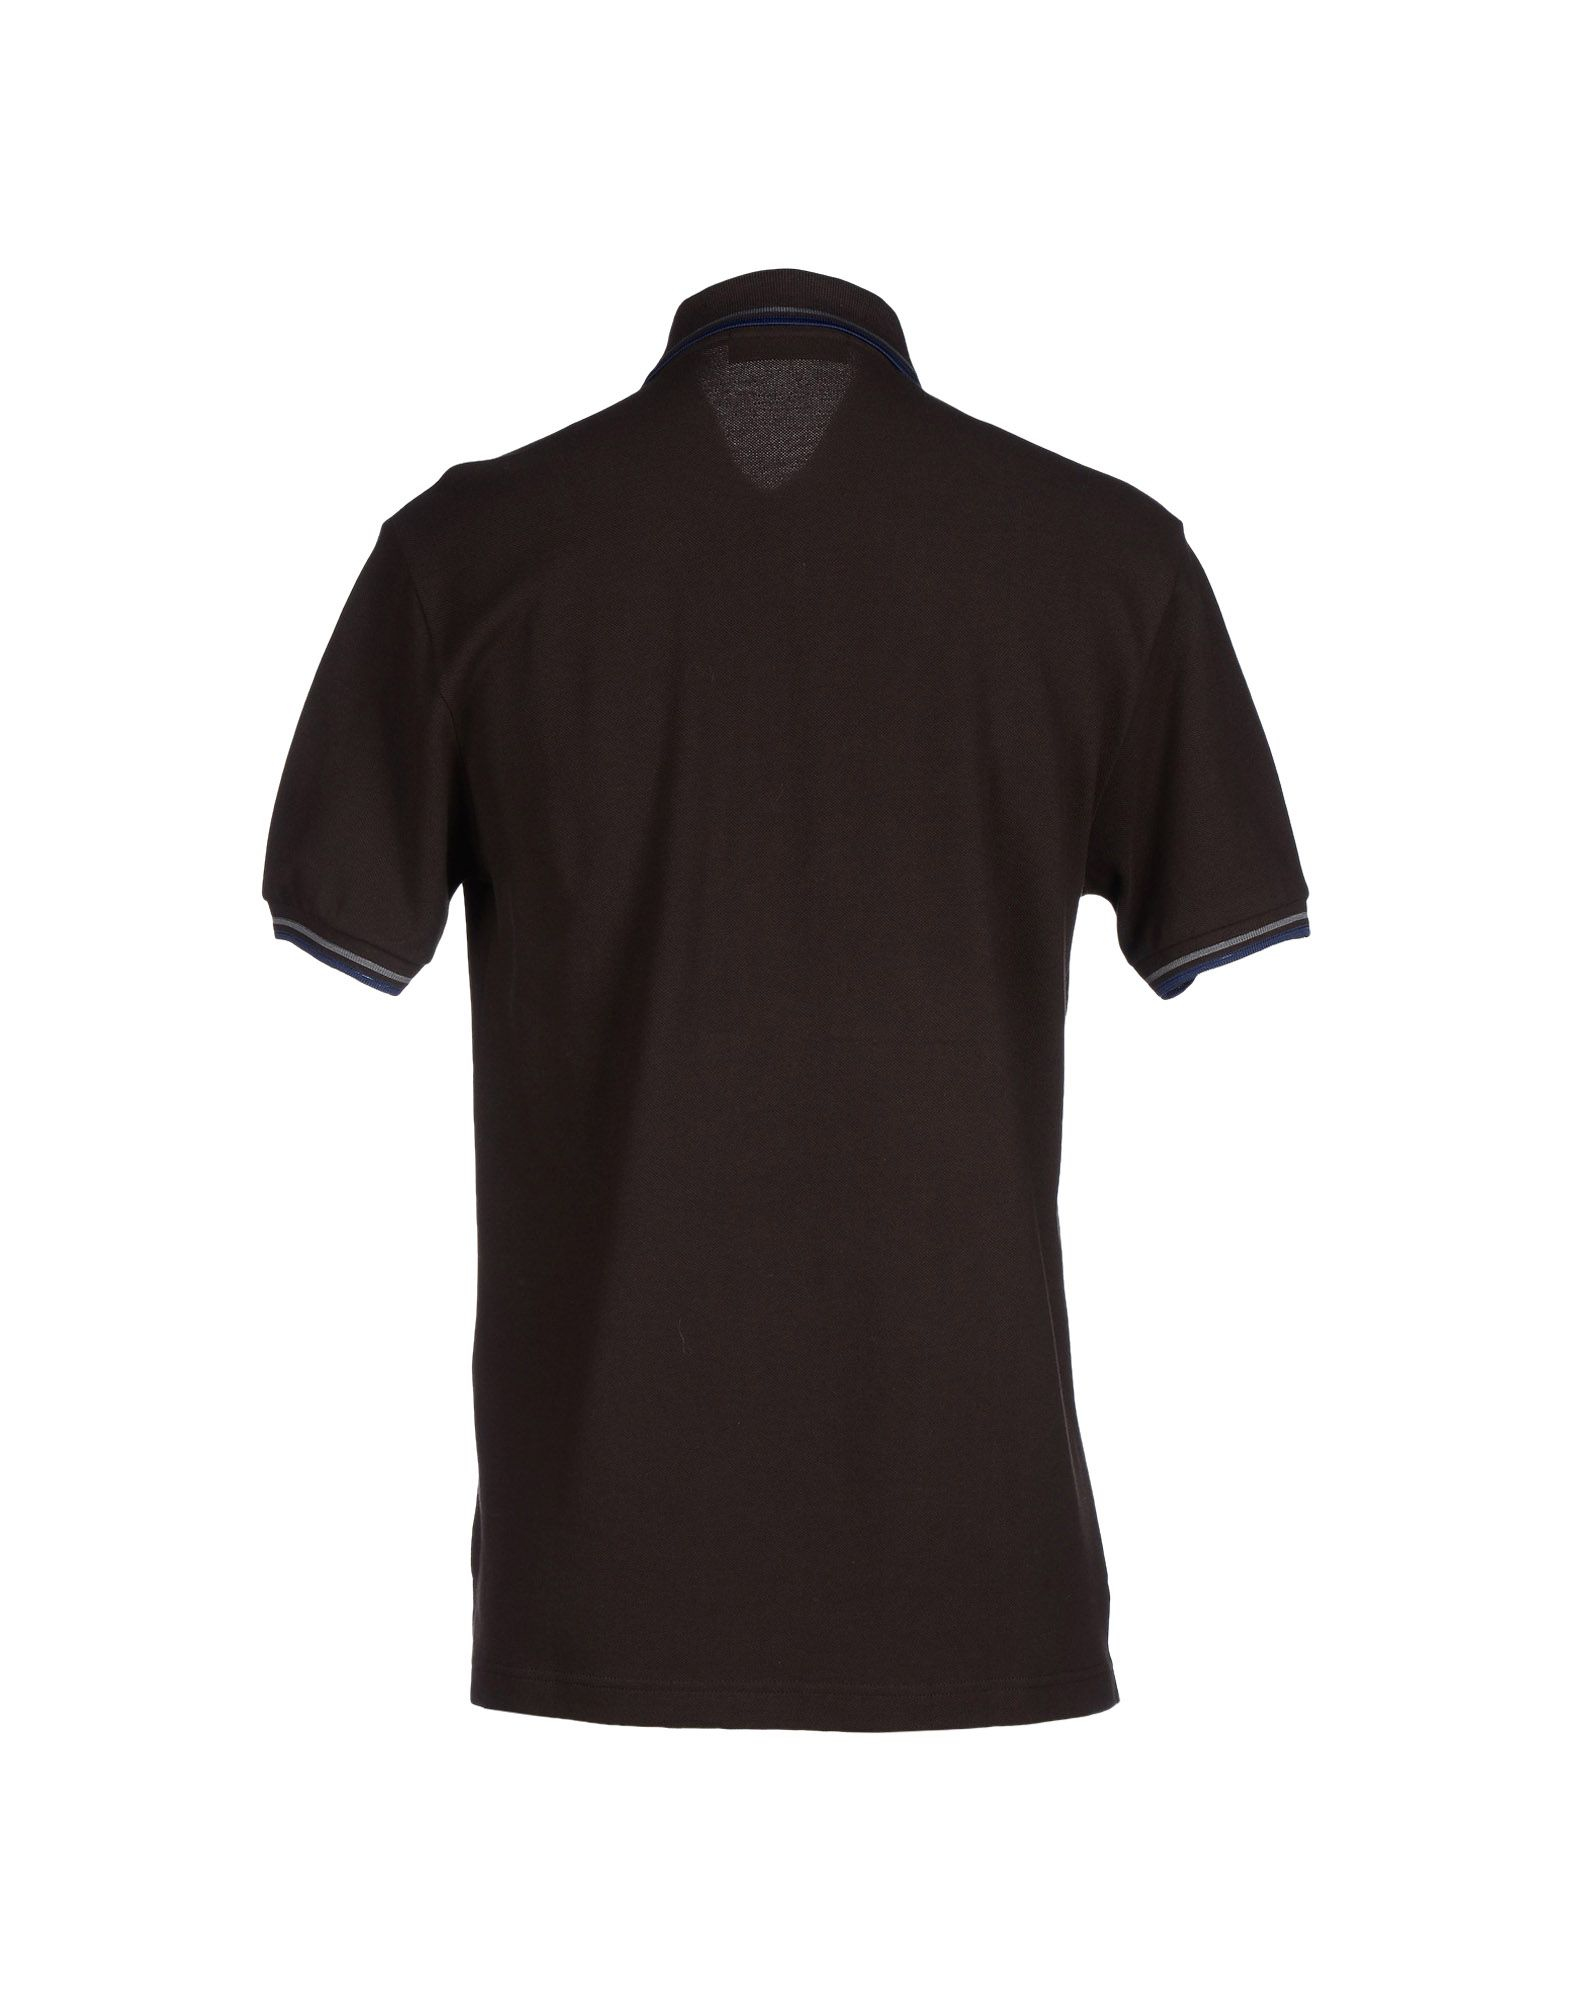 Fred perry polo shirt in brown for men lyst for Black brown mens shirts